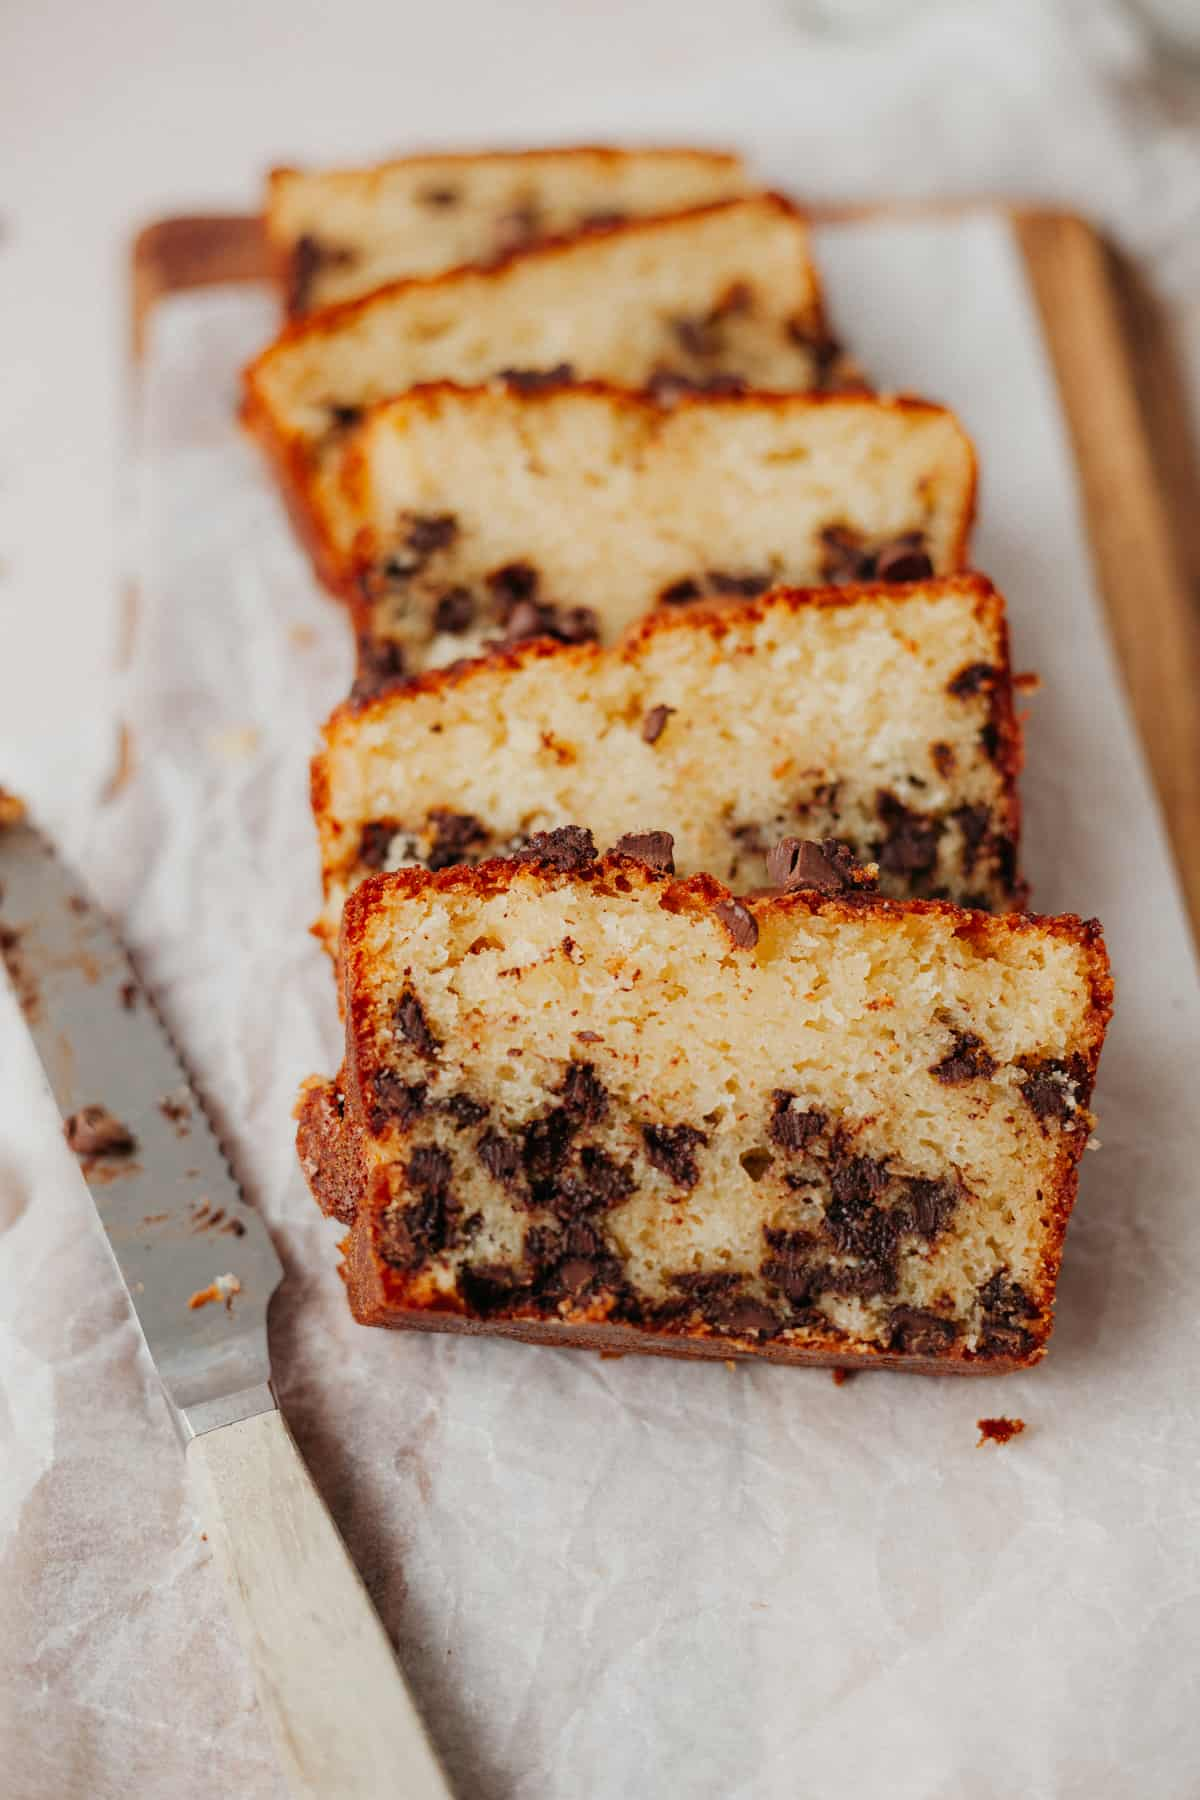 Five slices of a pound cake studded with chocolate chips on white parchment paper.